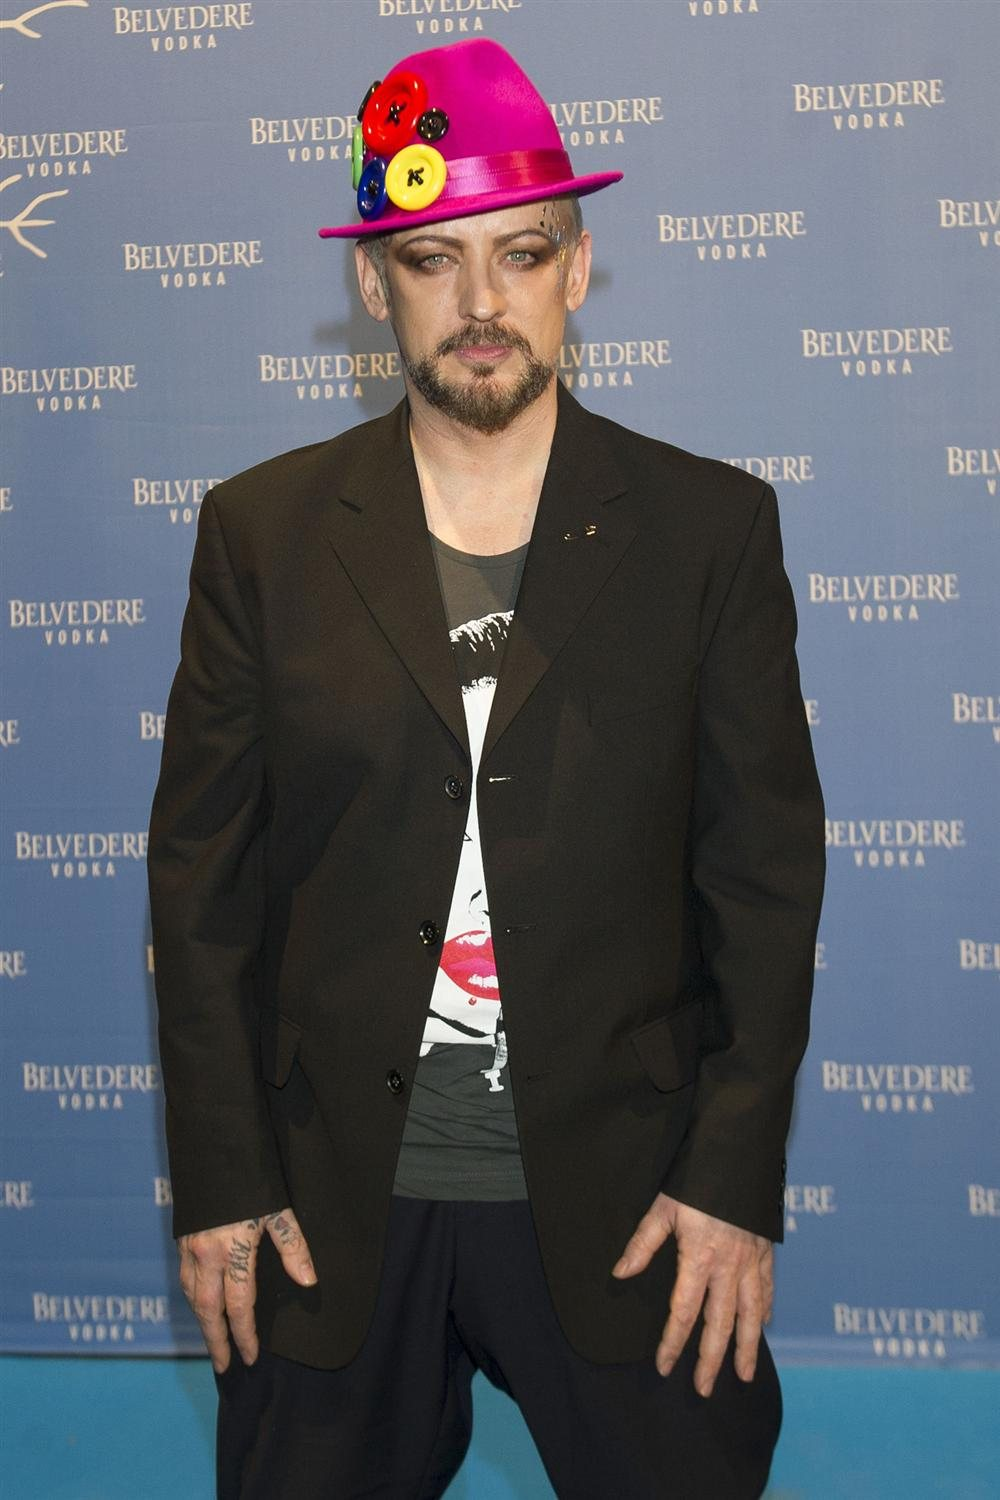 BOY GEORGE BELVEDERE I. BOY GEORGE